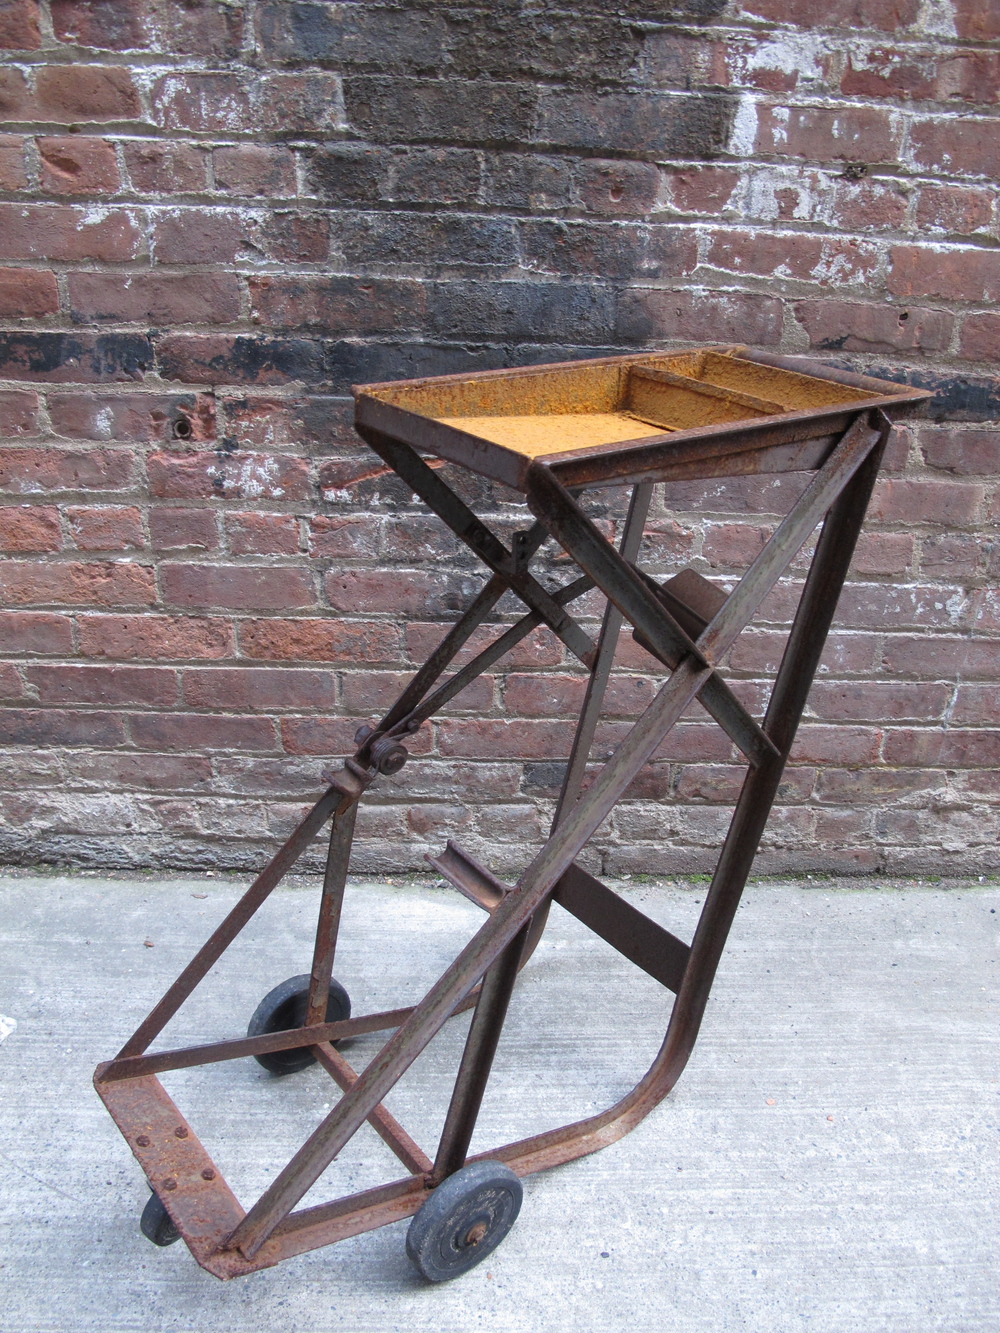 Rusted vintage metal rolling cart $50